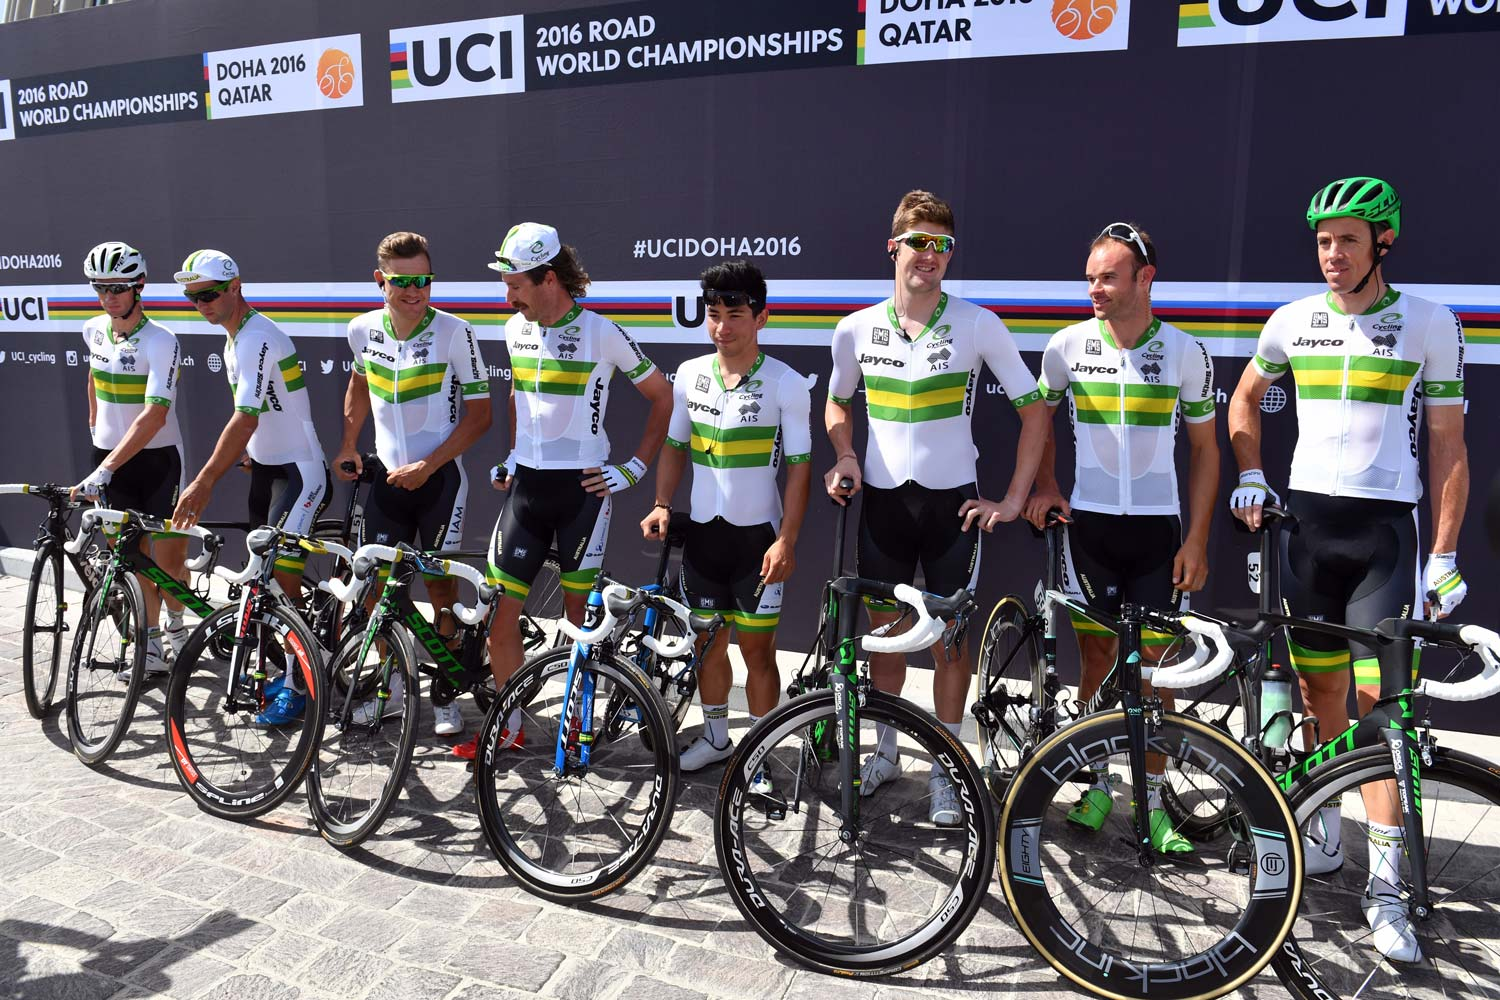 The Australian team in Qatar (from left to right): Mark Renshaw, Michael Matthews, Heinrich Haussler, Mitch Docker, Caleb Ewan, Luke Durbridge, Steele von Hoff and Mathew Hayman. Photo: Graham Watson